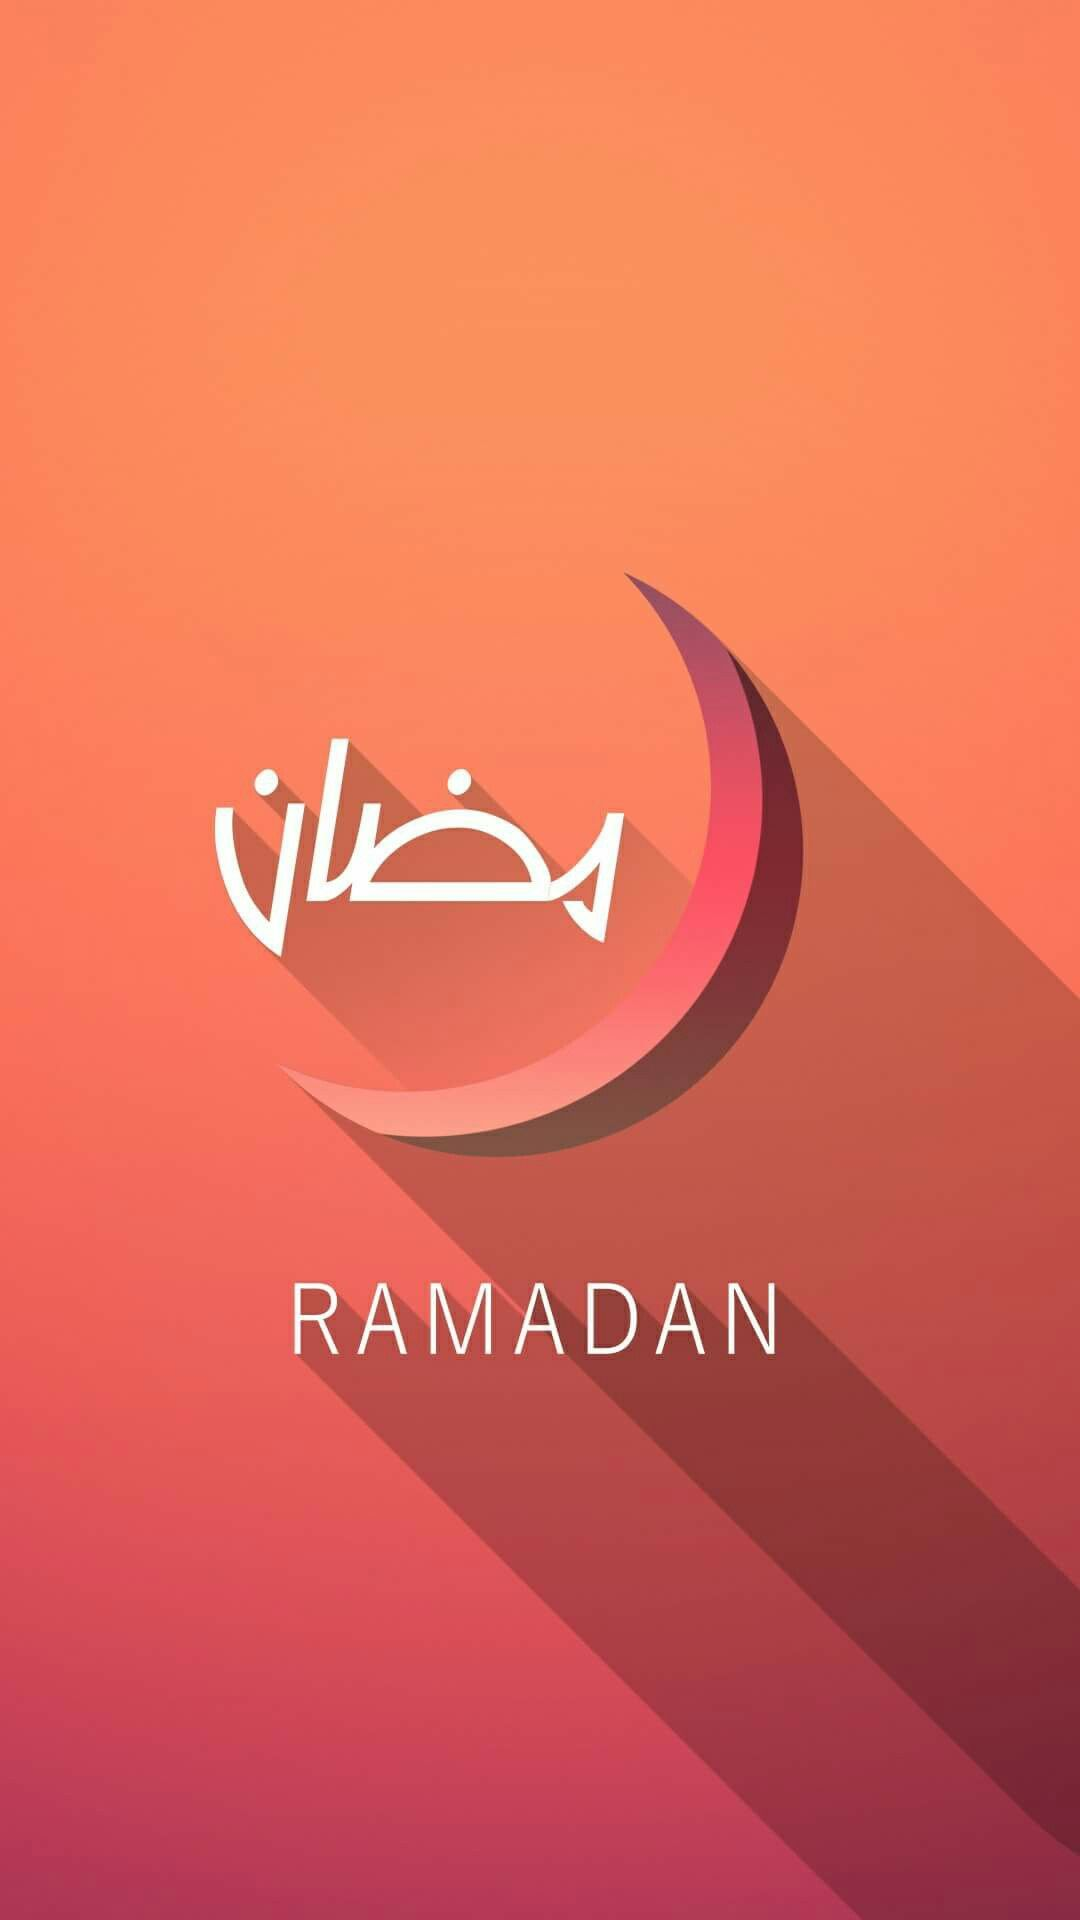 Pin by Amira Ahmed on Ramadan   Cute images for wallpaper ...